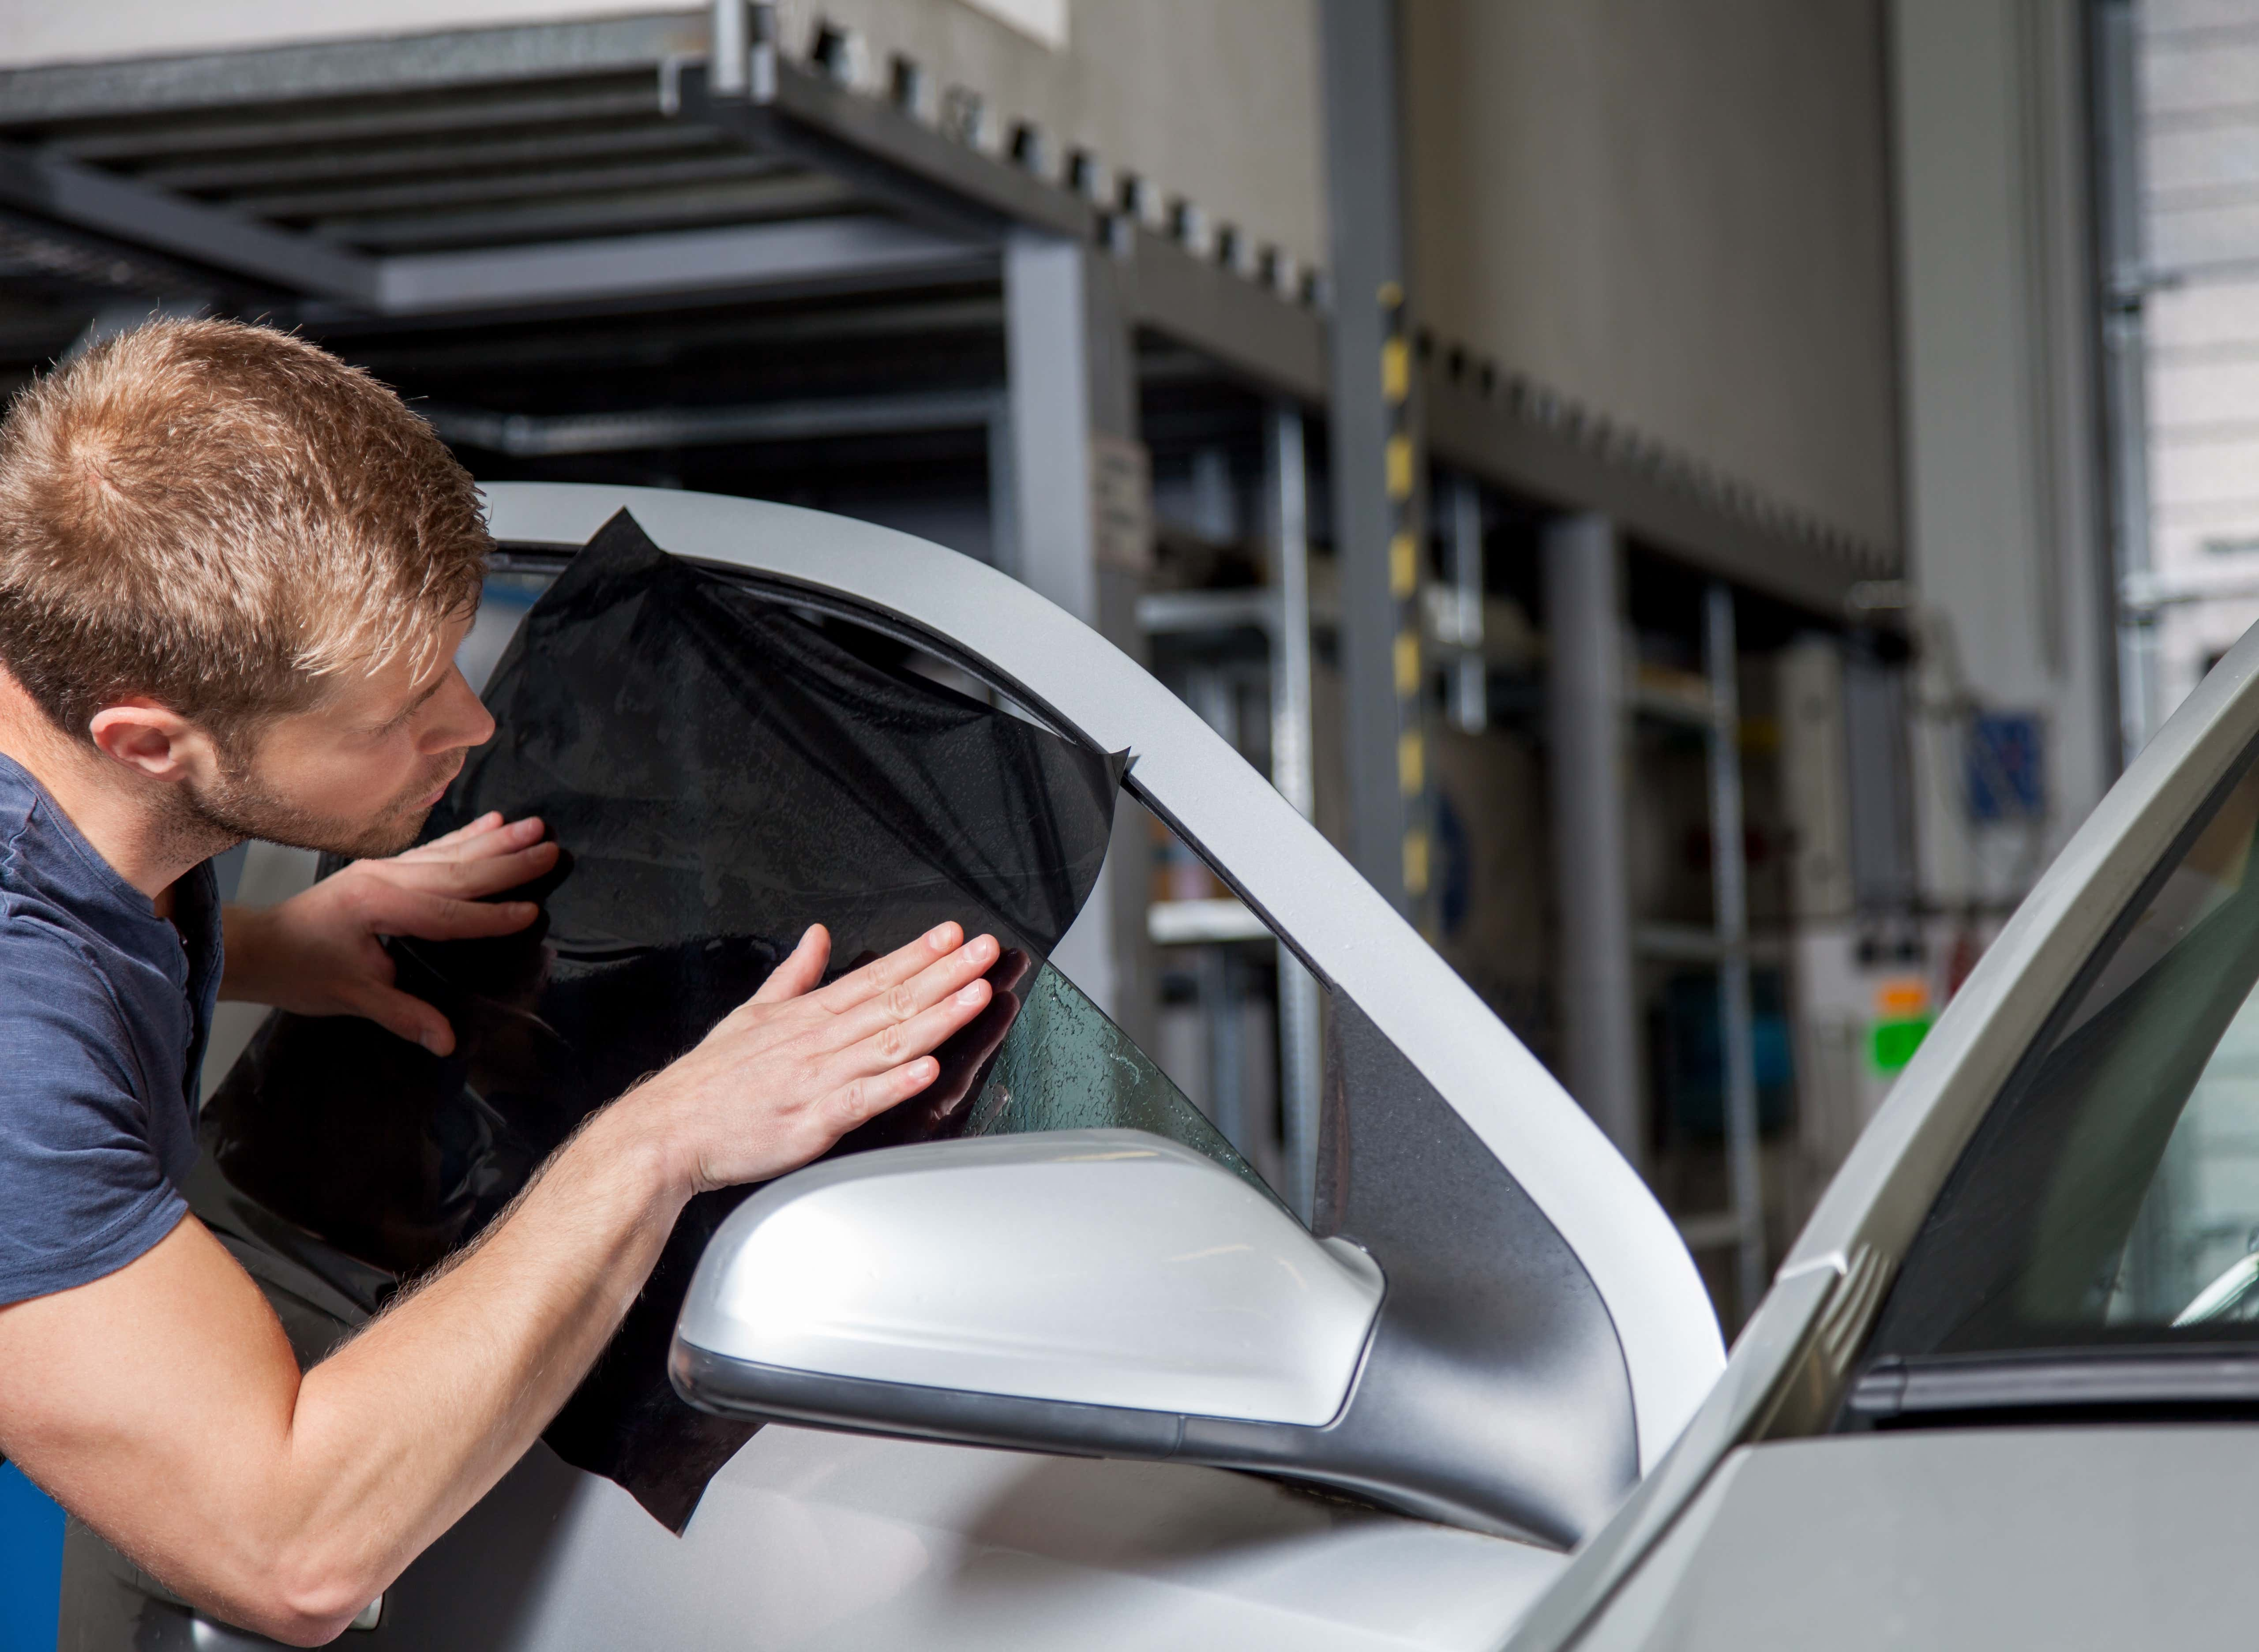 Window tinting isn't complicated, but requires a steady hand.